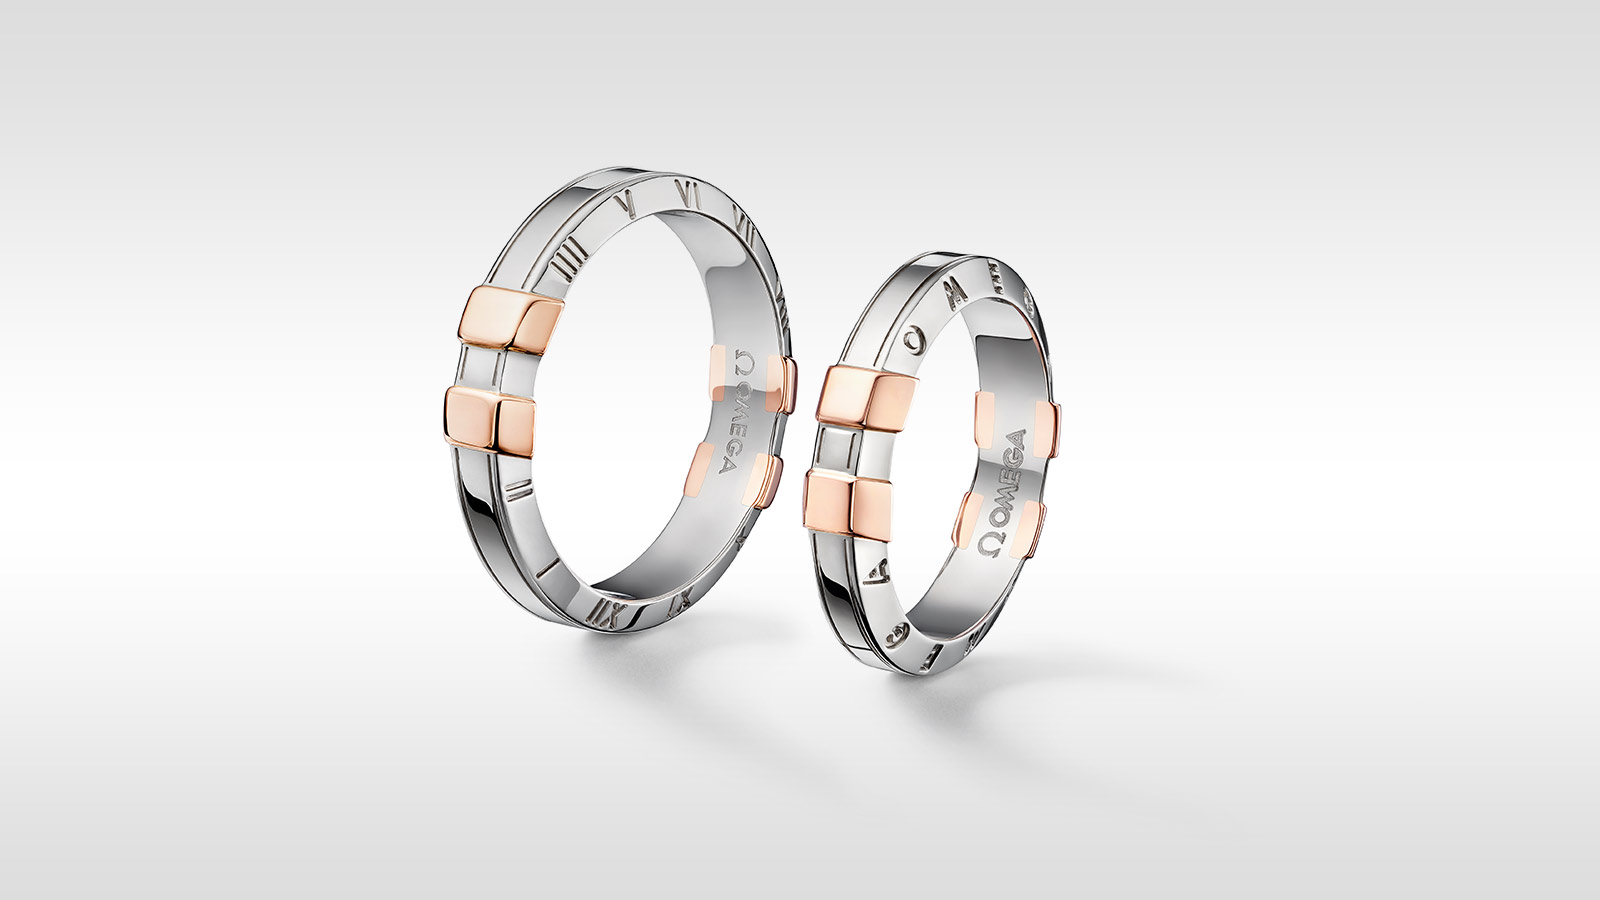 Constellation Ring Constellation Ring - R48BMA01001XX - View 1